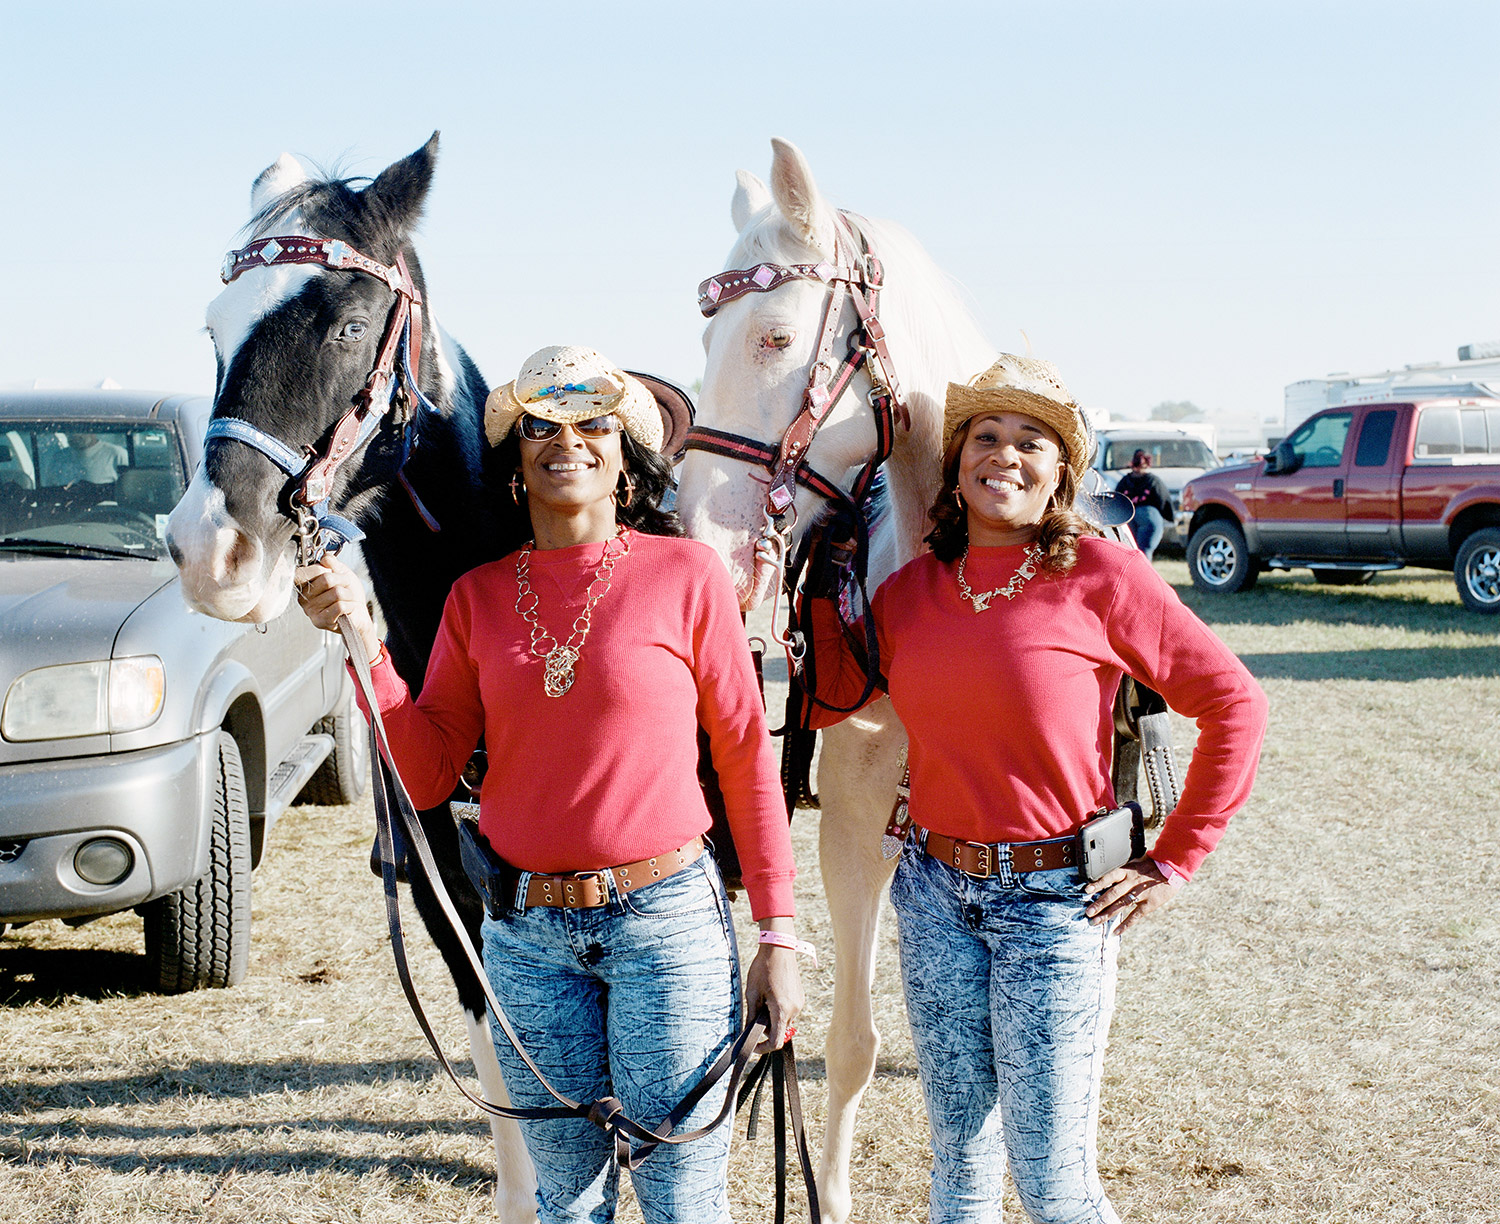 Members of the New Orleans based   Club 504 Girls  pose for a photo at a trail ride in Southern Louisiana. 2014